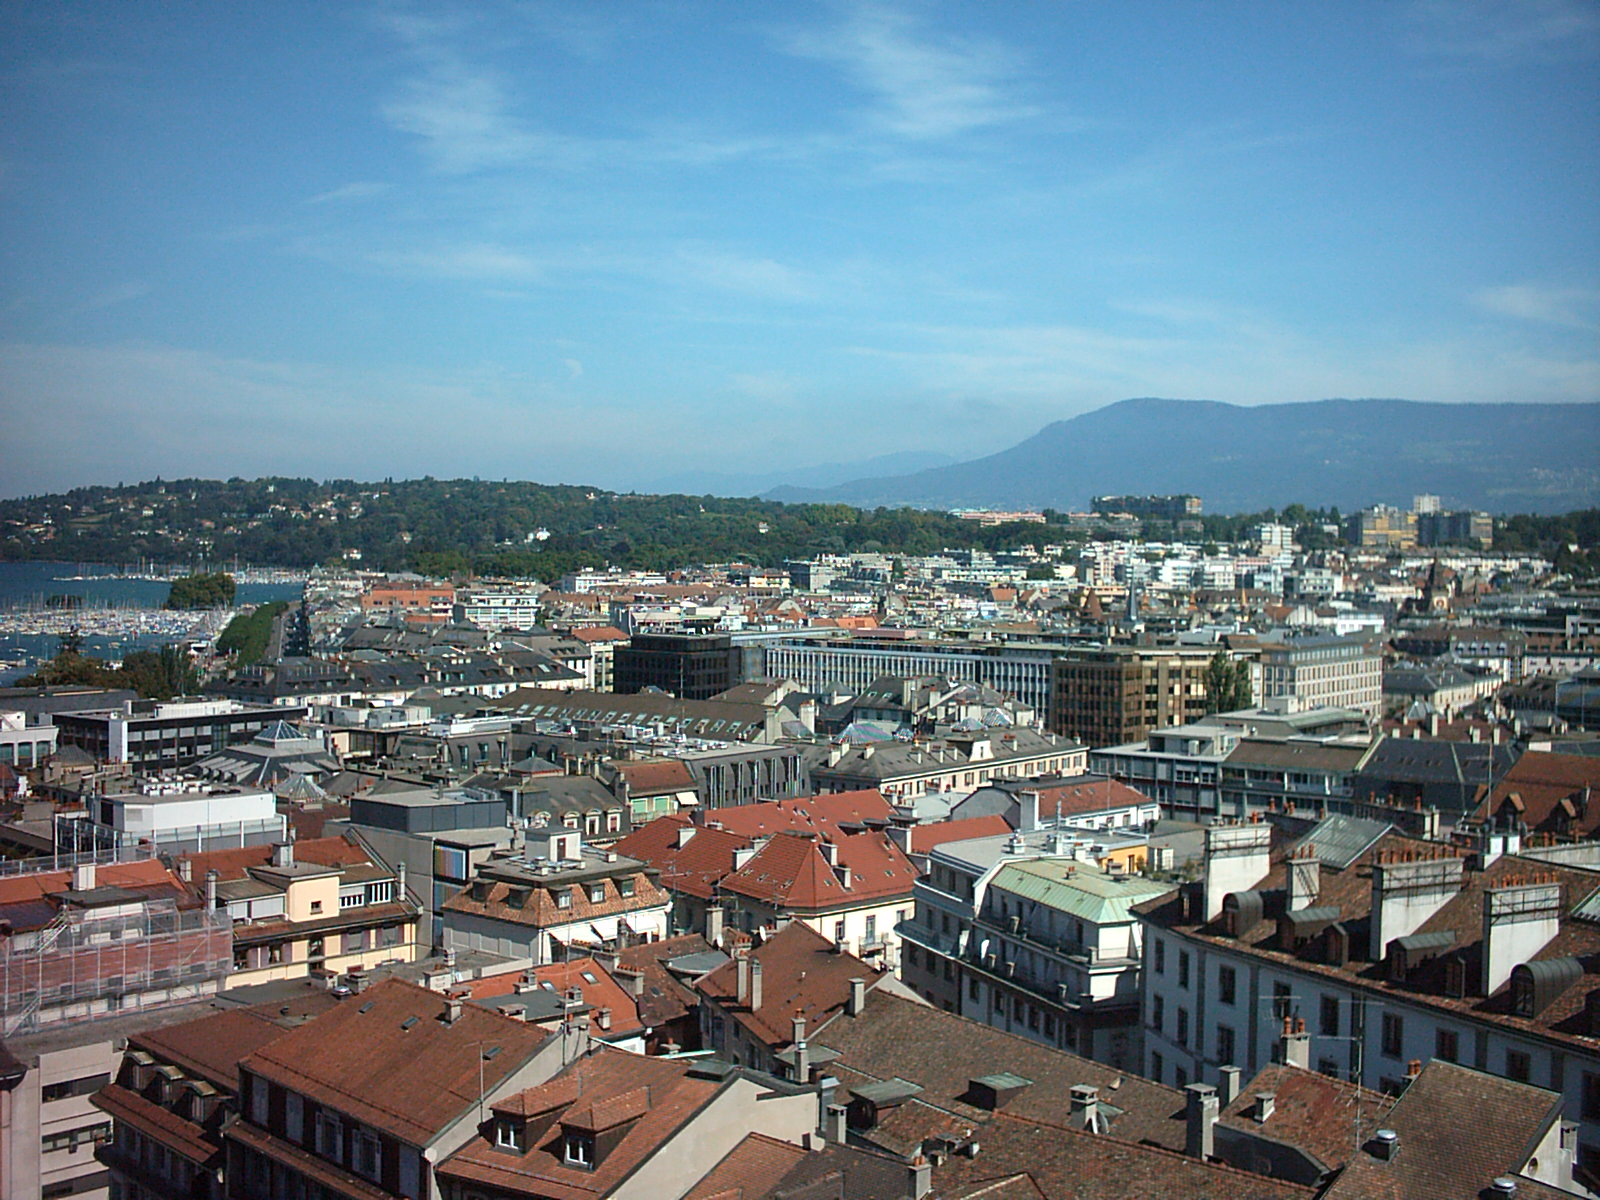 A picture of Eaux-Vives, a popular neighborhood in Geneva, that demonstrates the beautiful views.